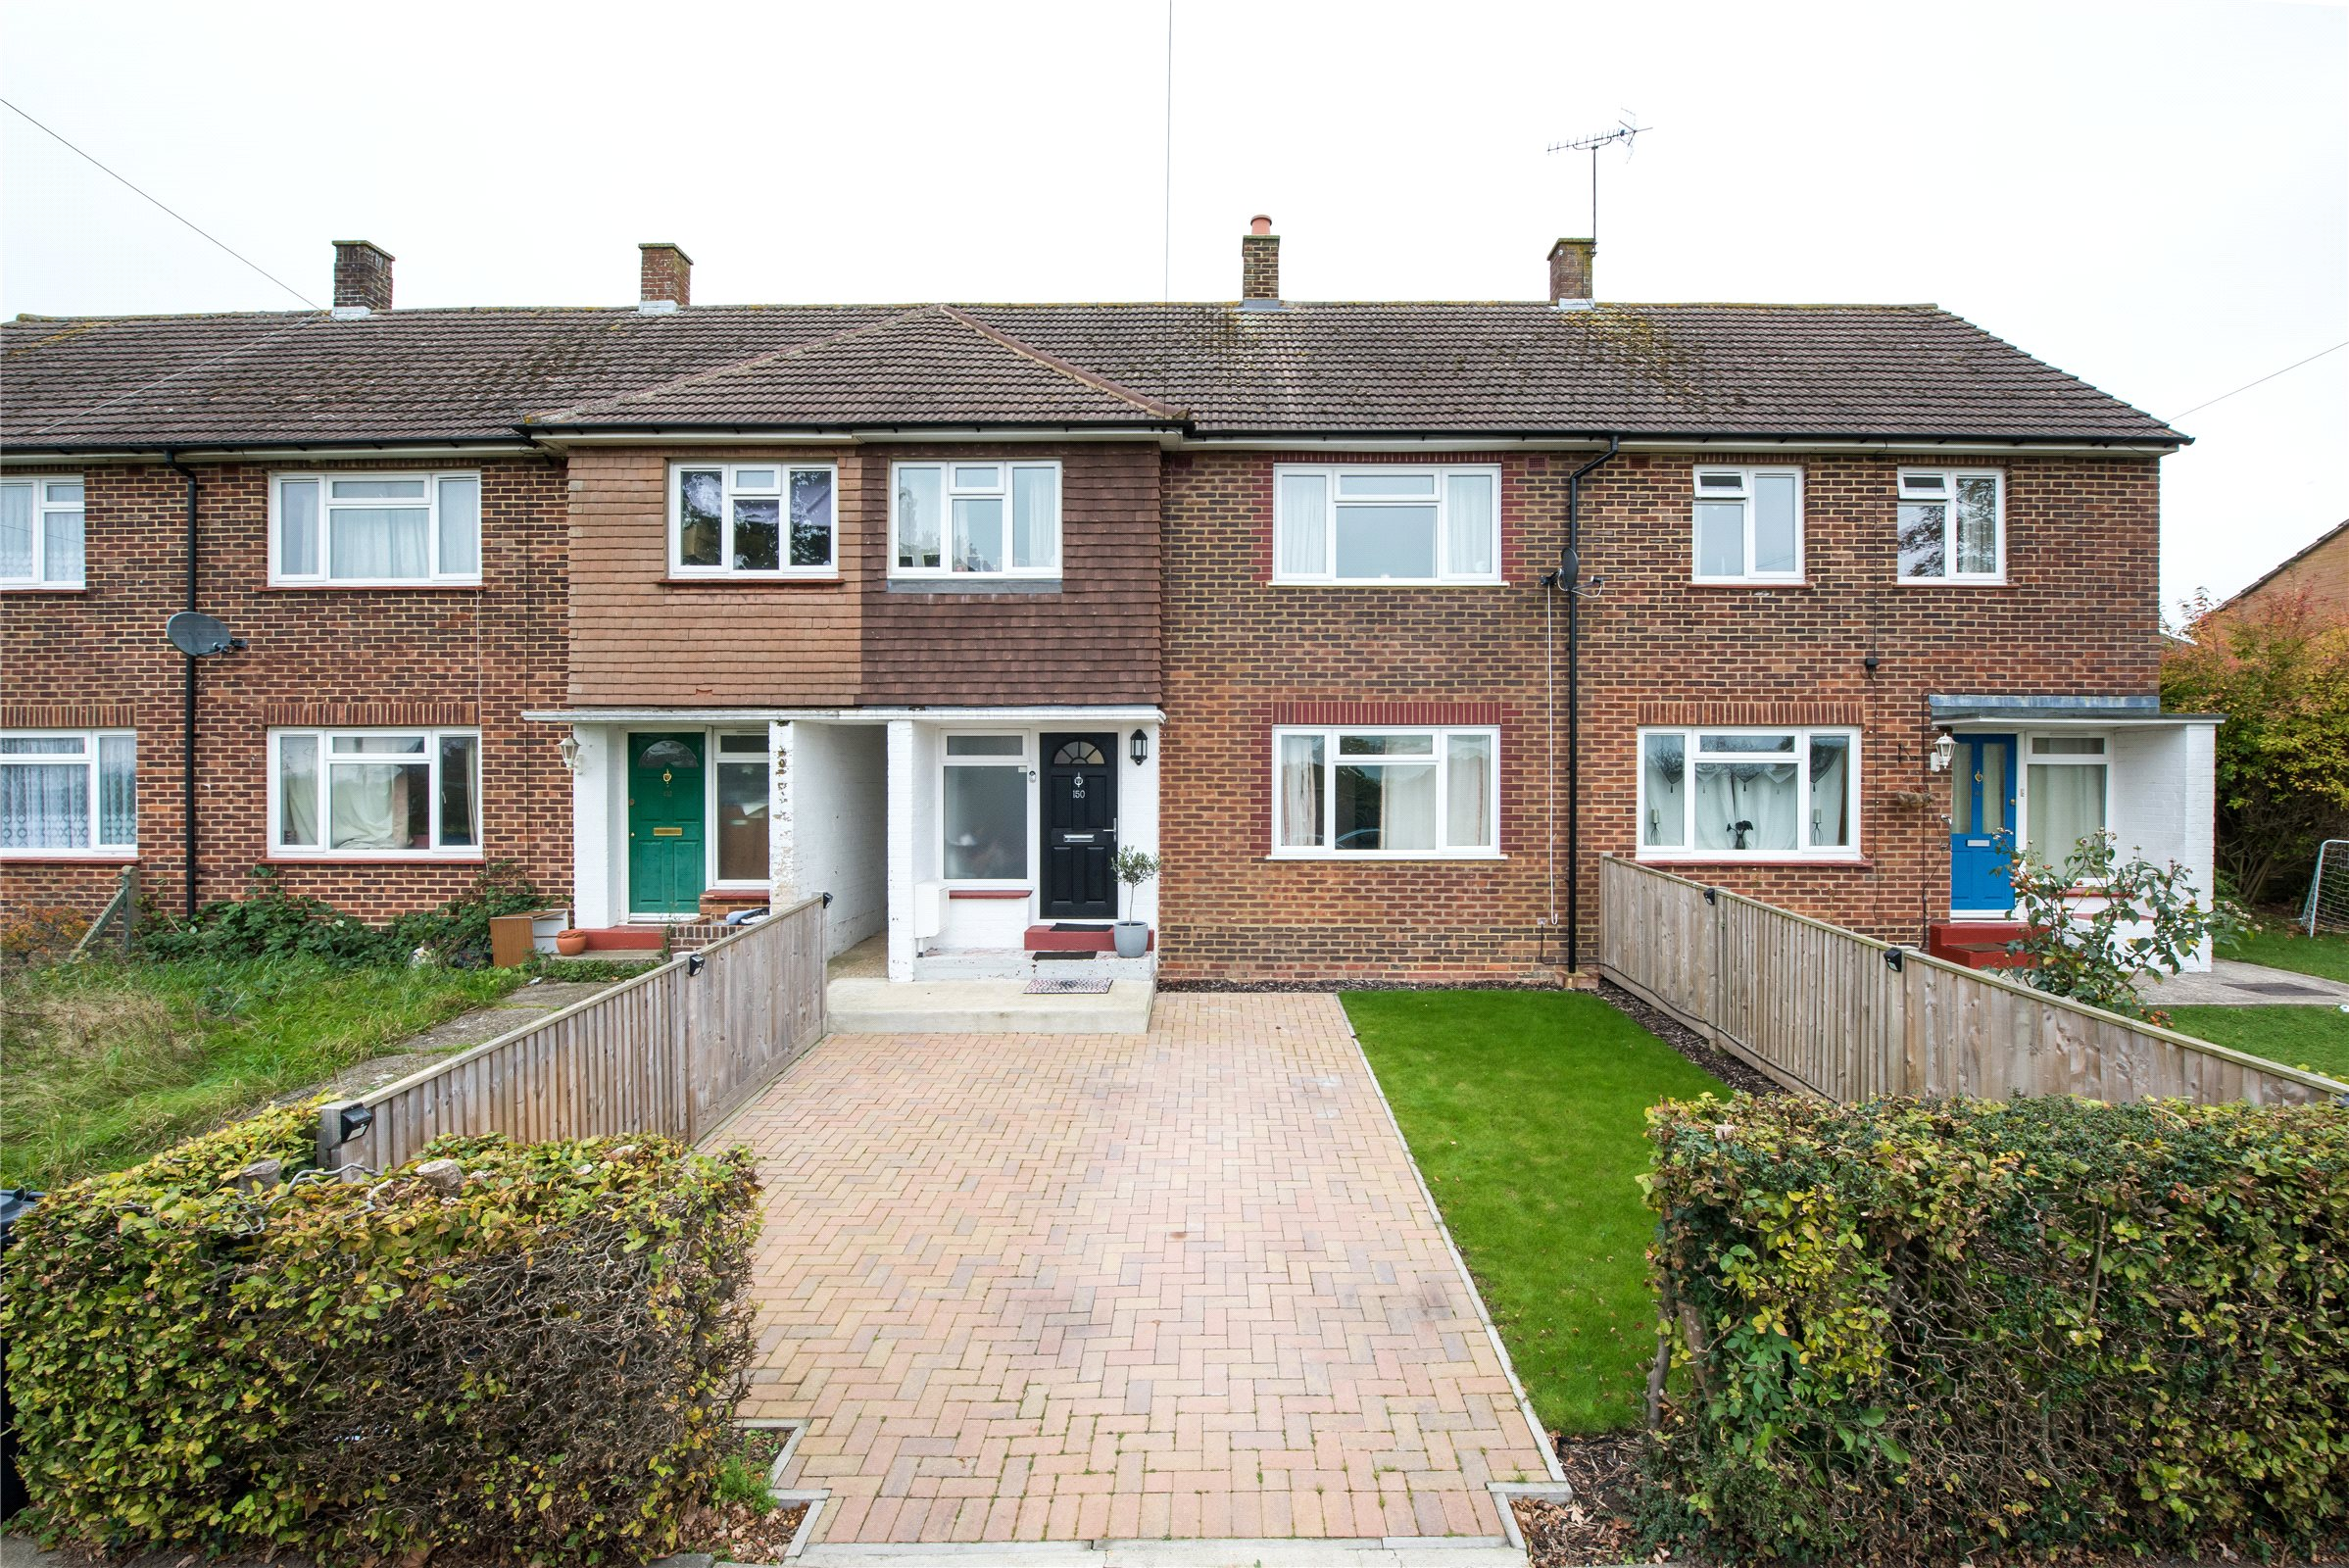 3 Bedrooms Terraced House for sale in Sandcross Lane, Reigate, Surrey, RH2